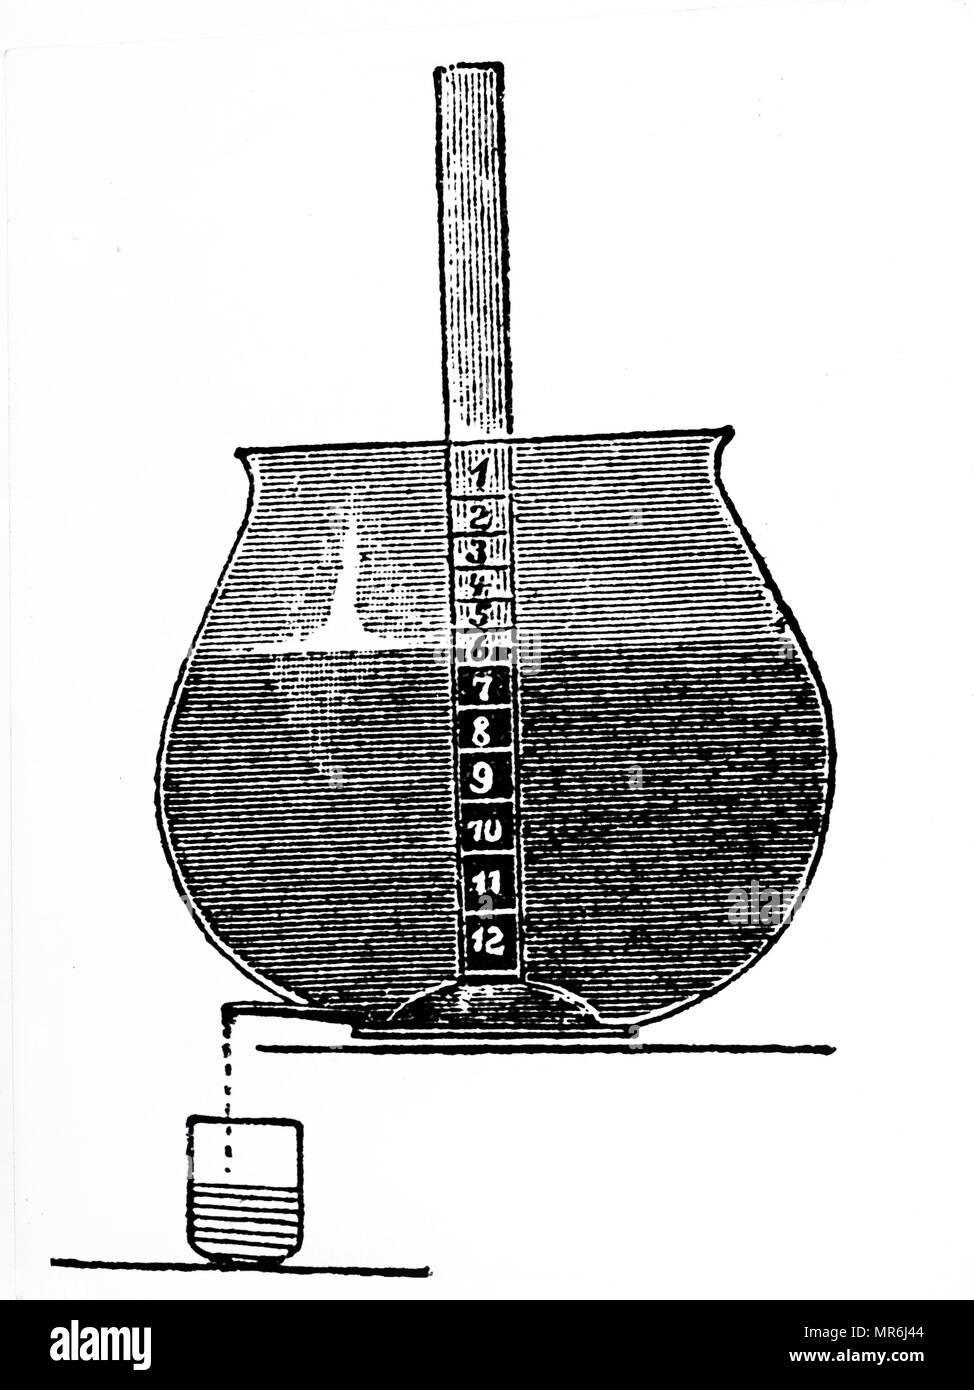 hight resolution of 19th century diagram of a simple water clock where water is allowed to escape at a controlled rate from a spout at the bottom the divisions allowed for the